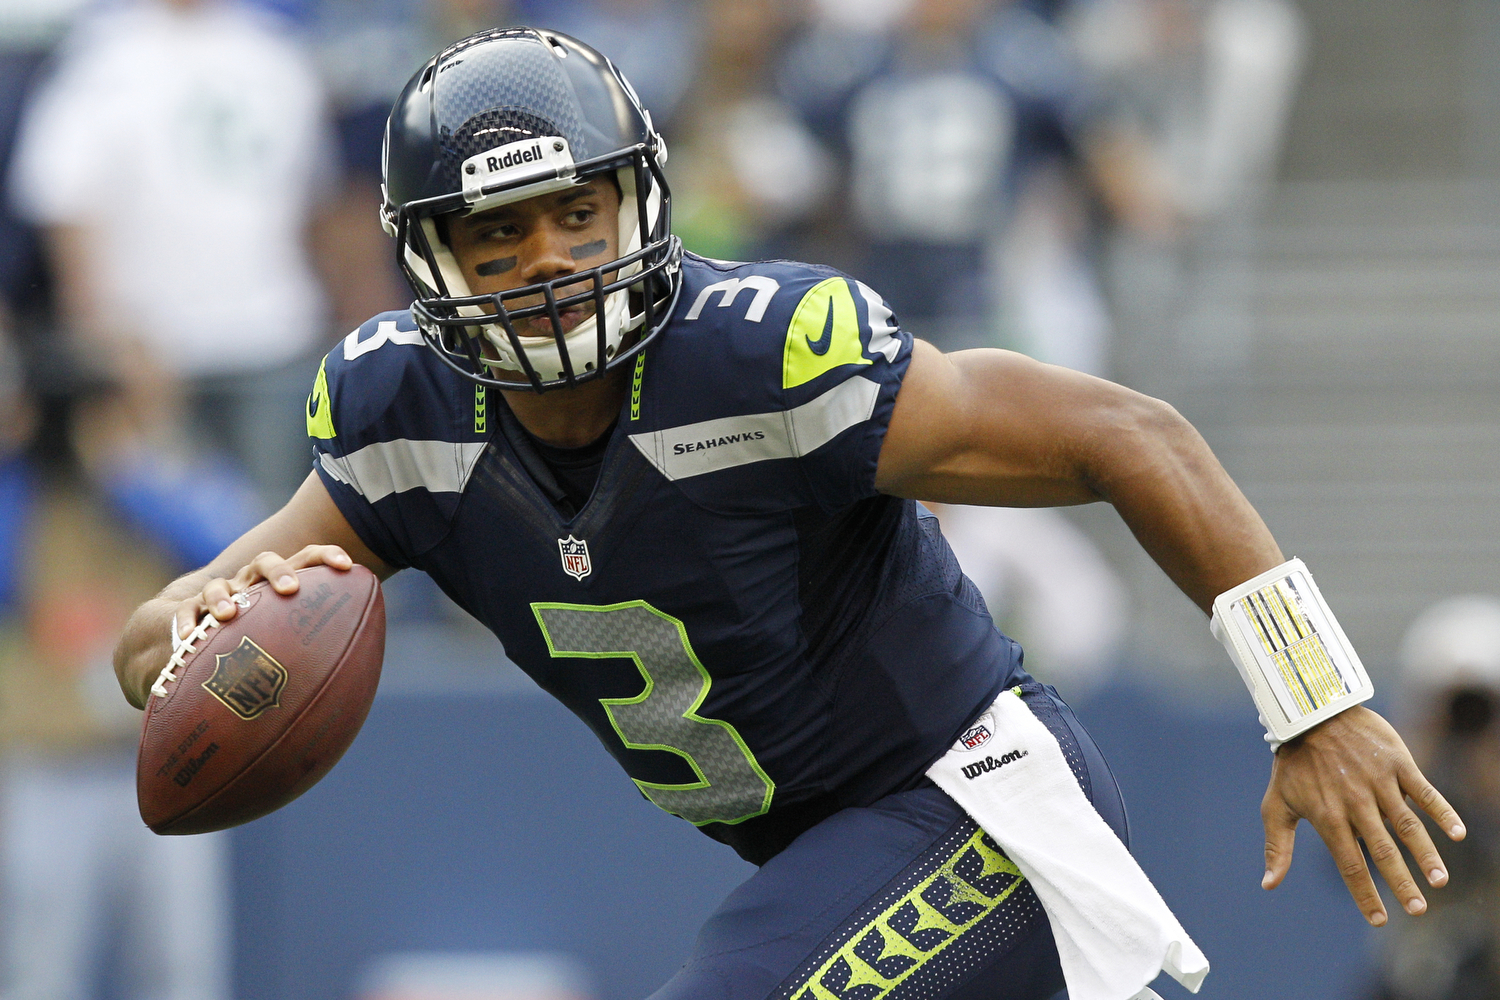 2012 NFL Draft, third round, Seattle Seahawks -- Wilson has played three seasons for the Seahawks (2012-14), leading the team to two consecutive Super Bowl appearances, including the franchise's first Super Bowl triumph, a 43-8 rout of the Denver Broncos in Super Bowl XLVIII. (Ric Tapia/NFL)